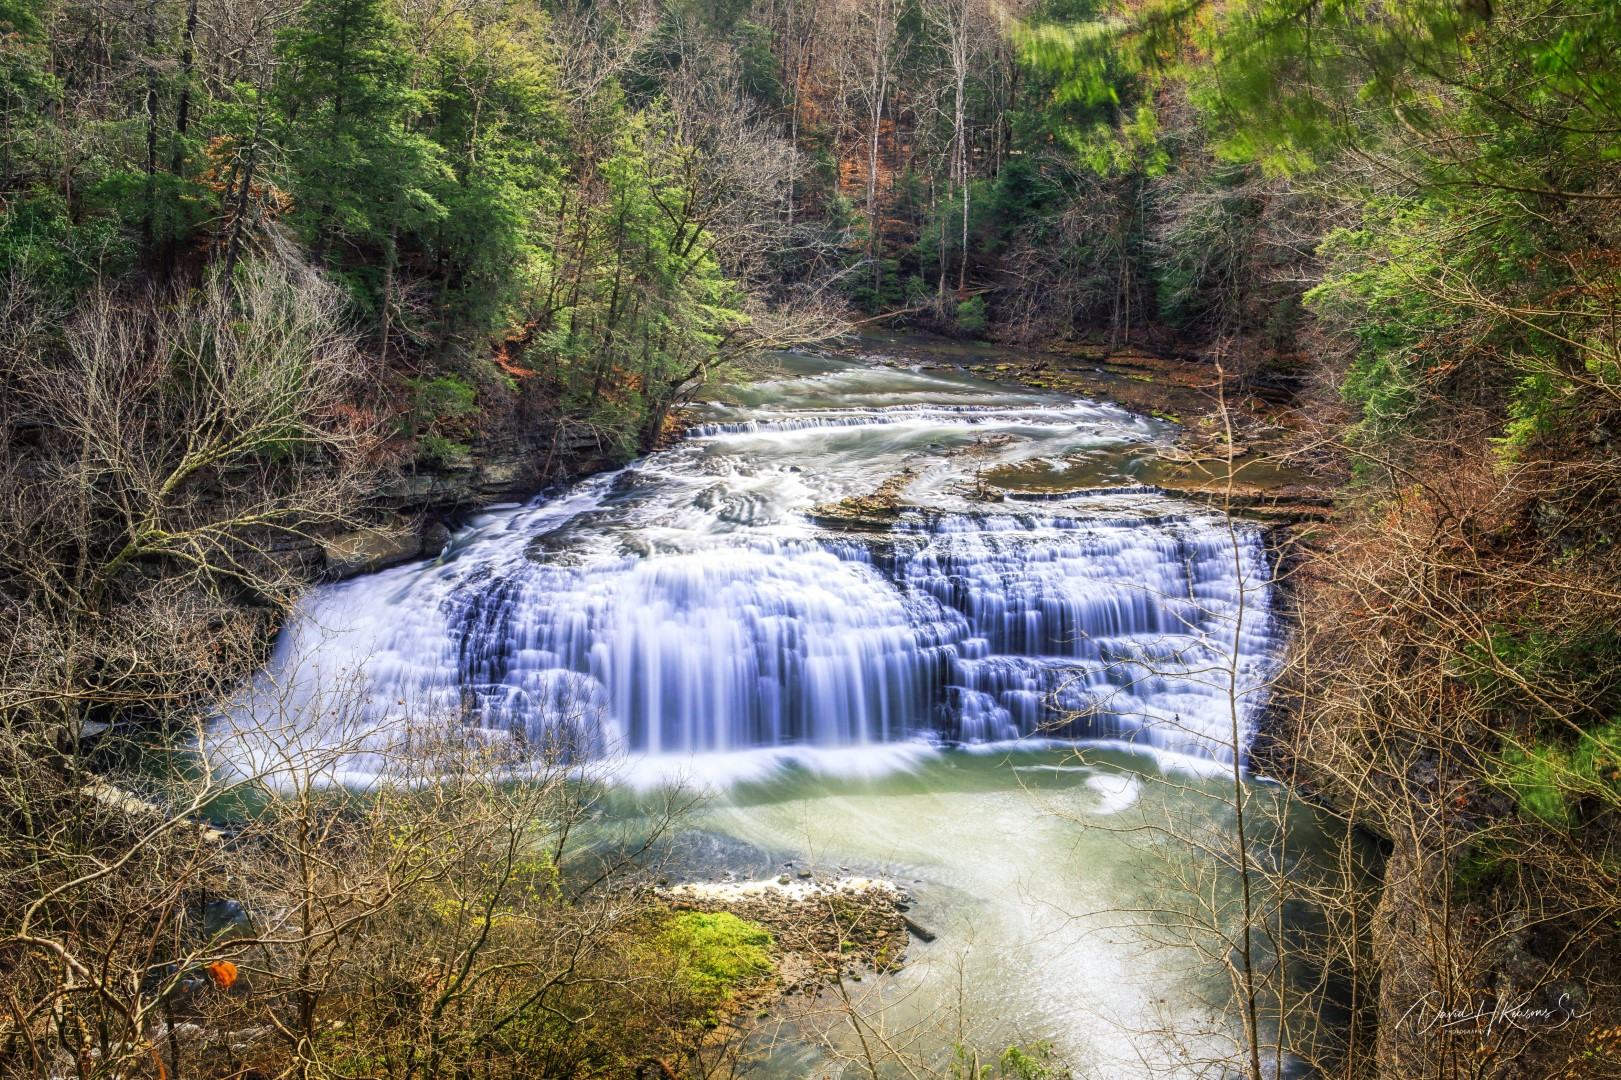 This falls is the largest upstream falls before Burgess Falls itself.